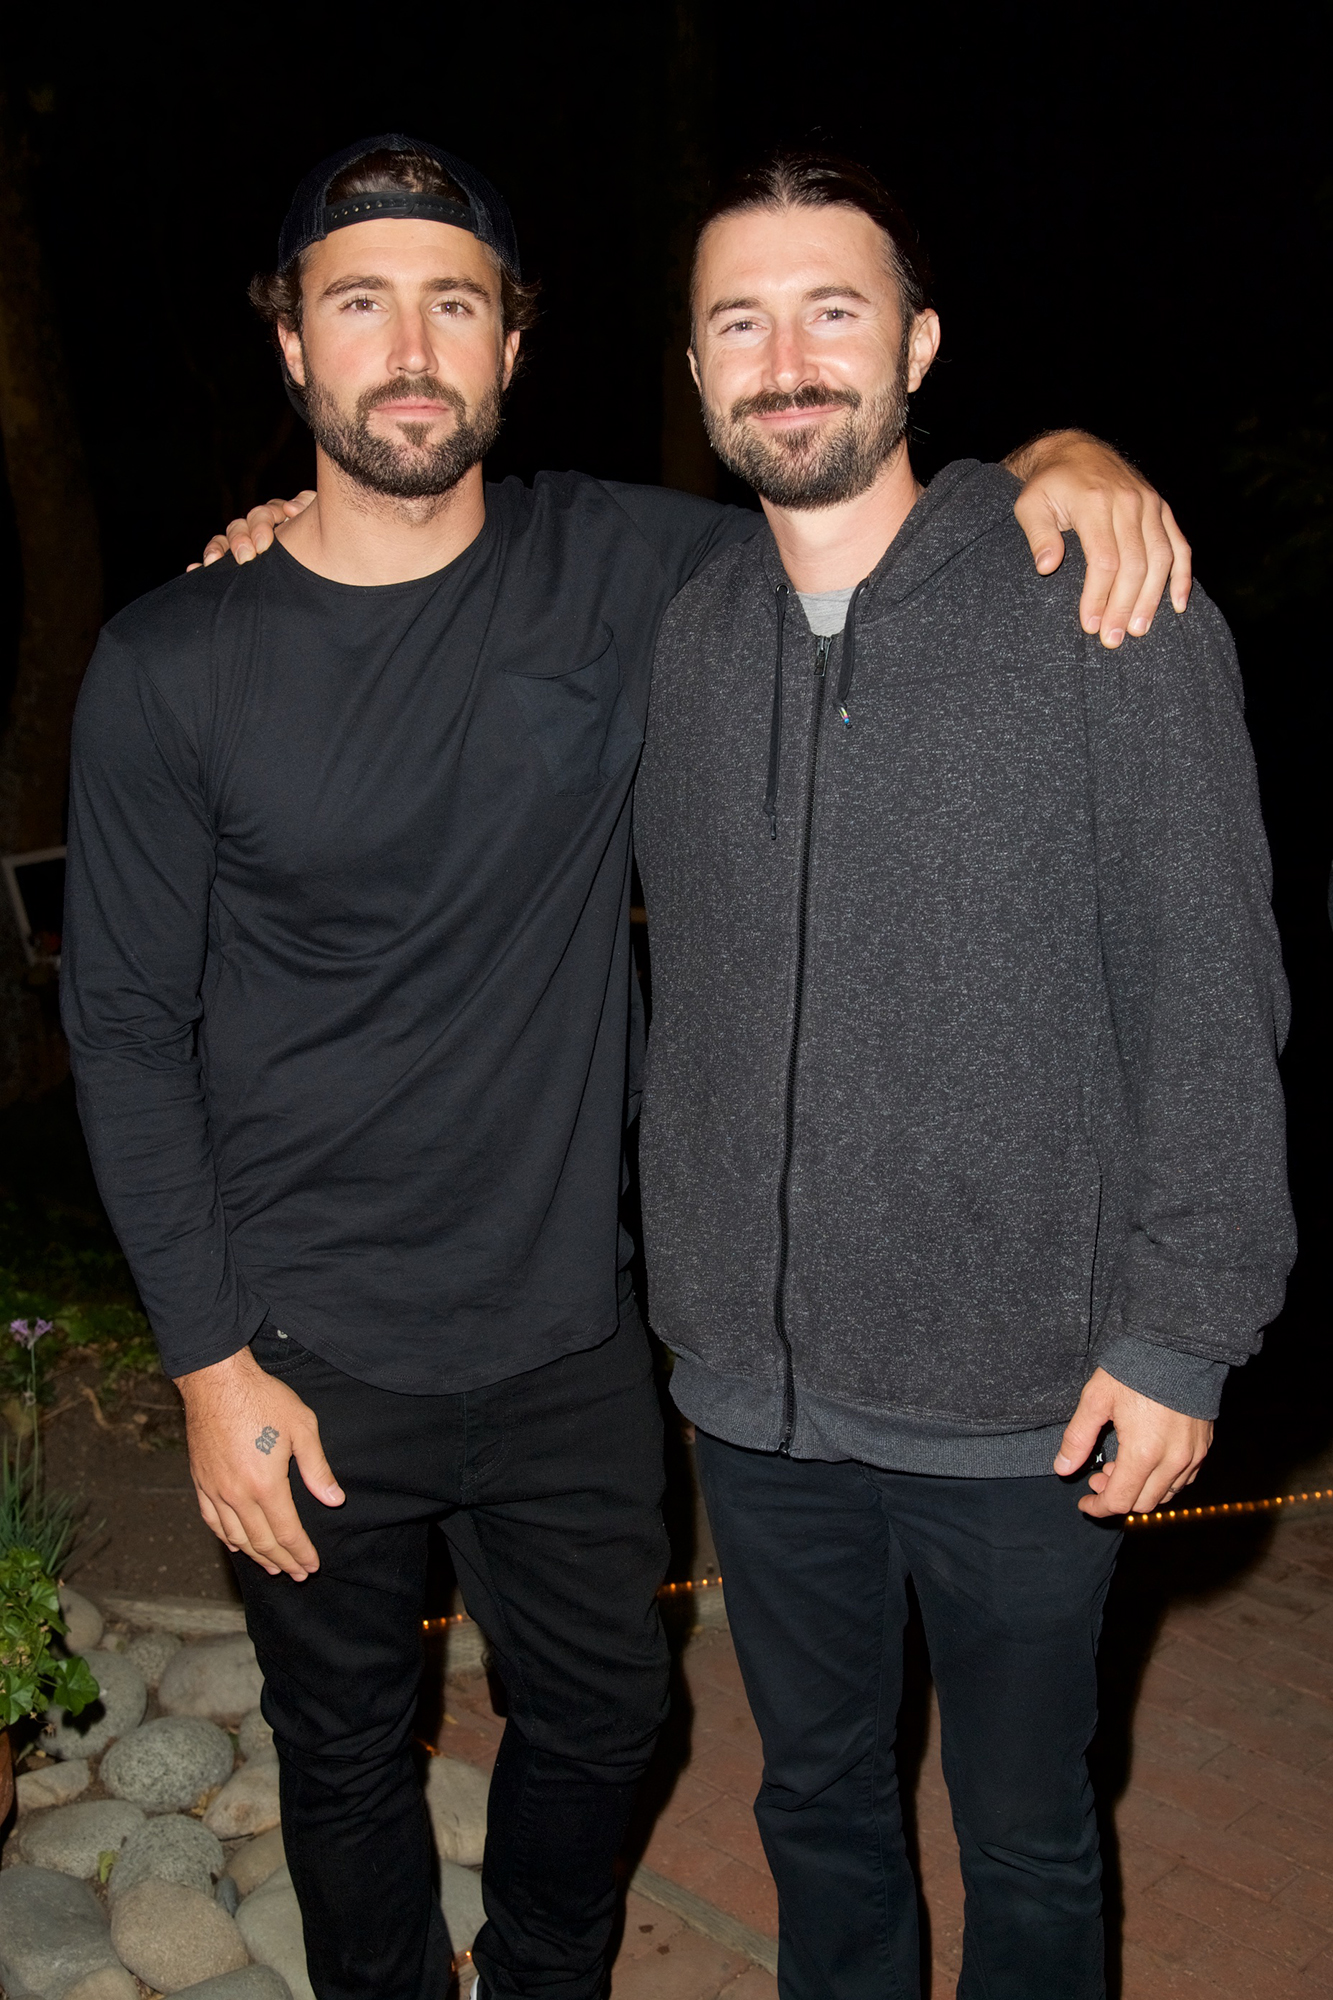 Celebrity Siblings - Caitlyn Jenner's sons with Linda Thompson may not be *quite* as famous as their half-sisters, the Kardashians and the Jenners, but they've definitely had more than their 15 minutes of fame. After starring together in 2005's The Princes of Malibu , Brody became a regular fixture on The Hills .